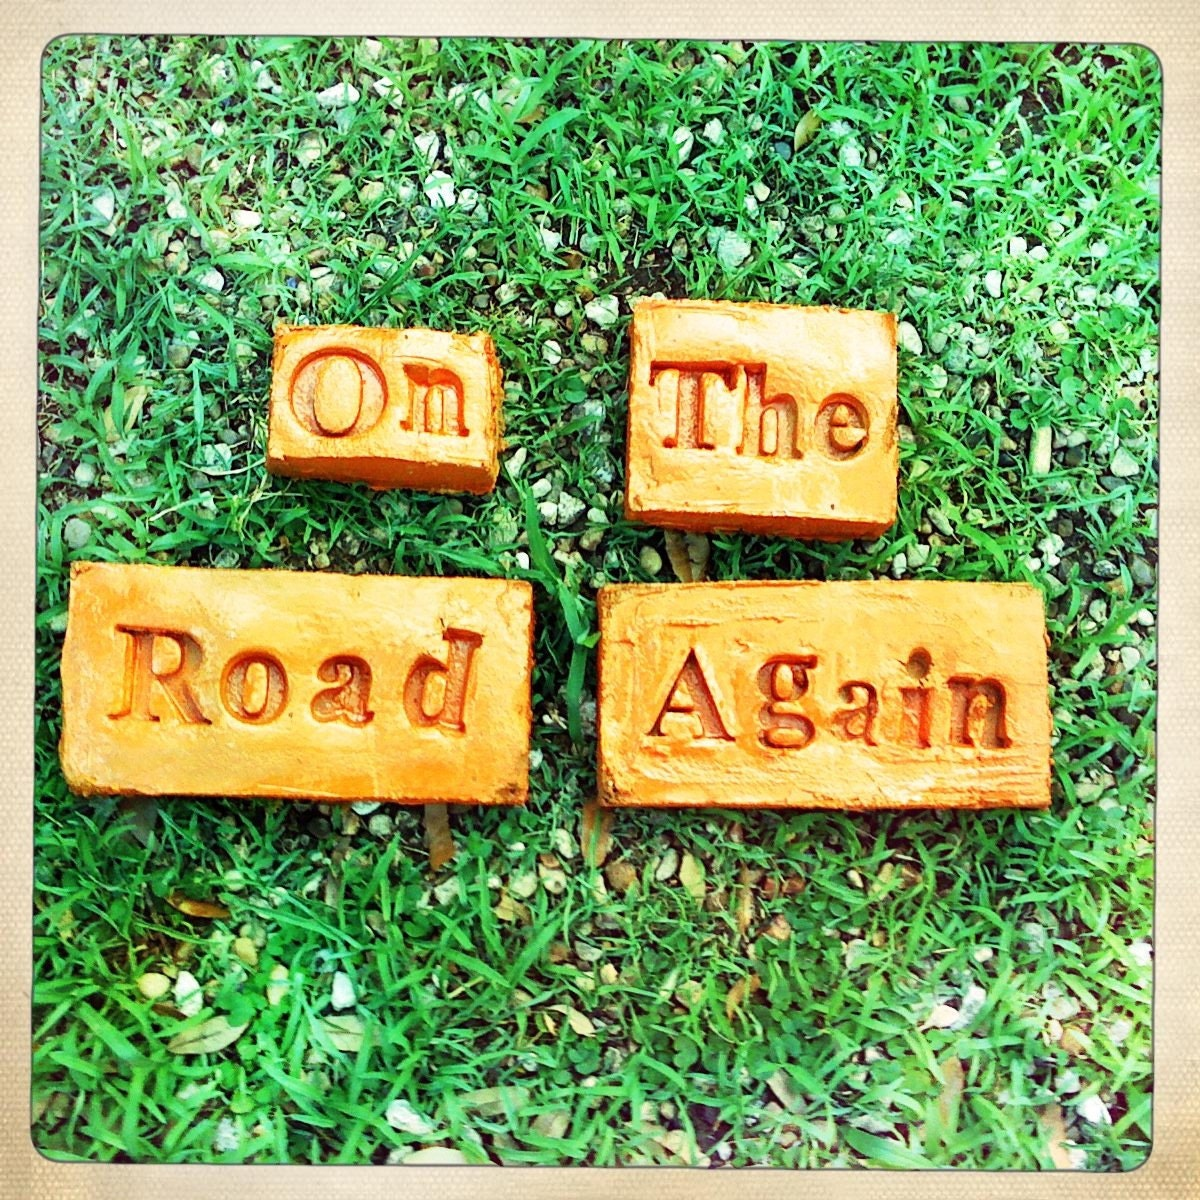 Willie Nelson On The Road Again Garden Stones